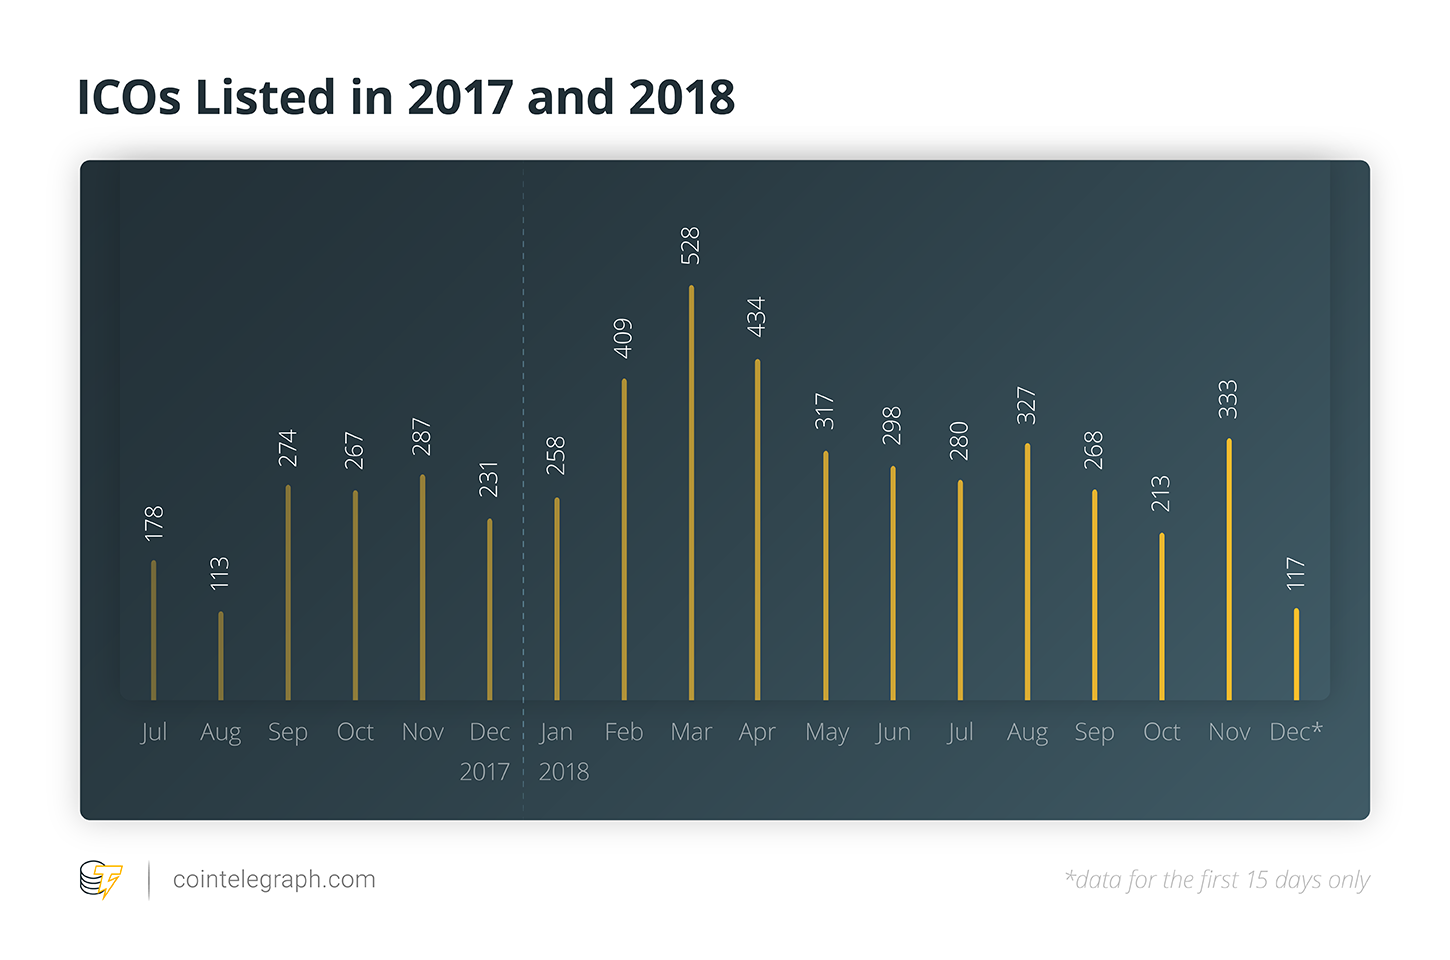 ICOs Listed 2017 and 2017